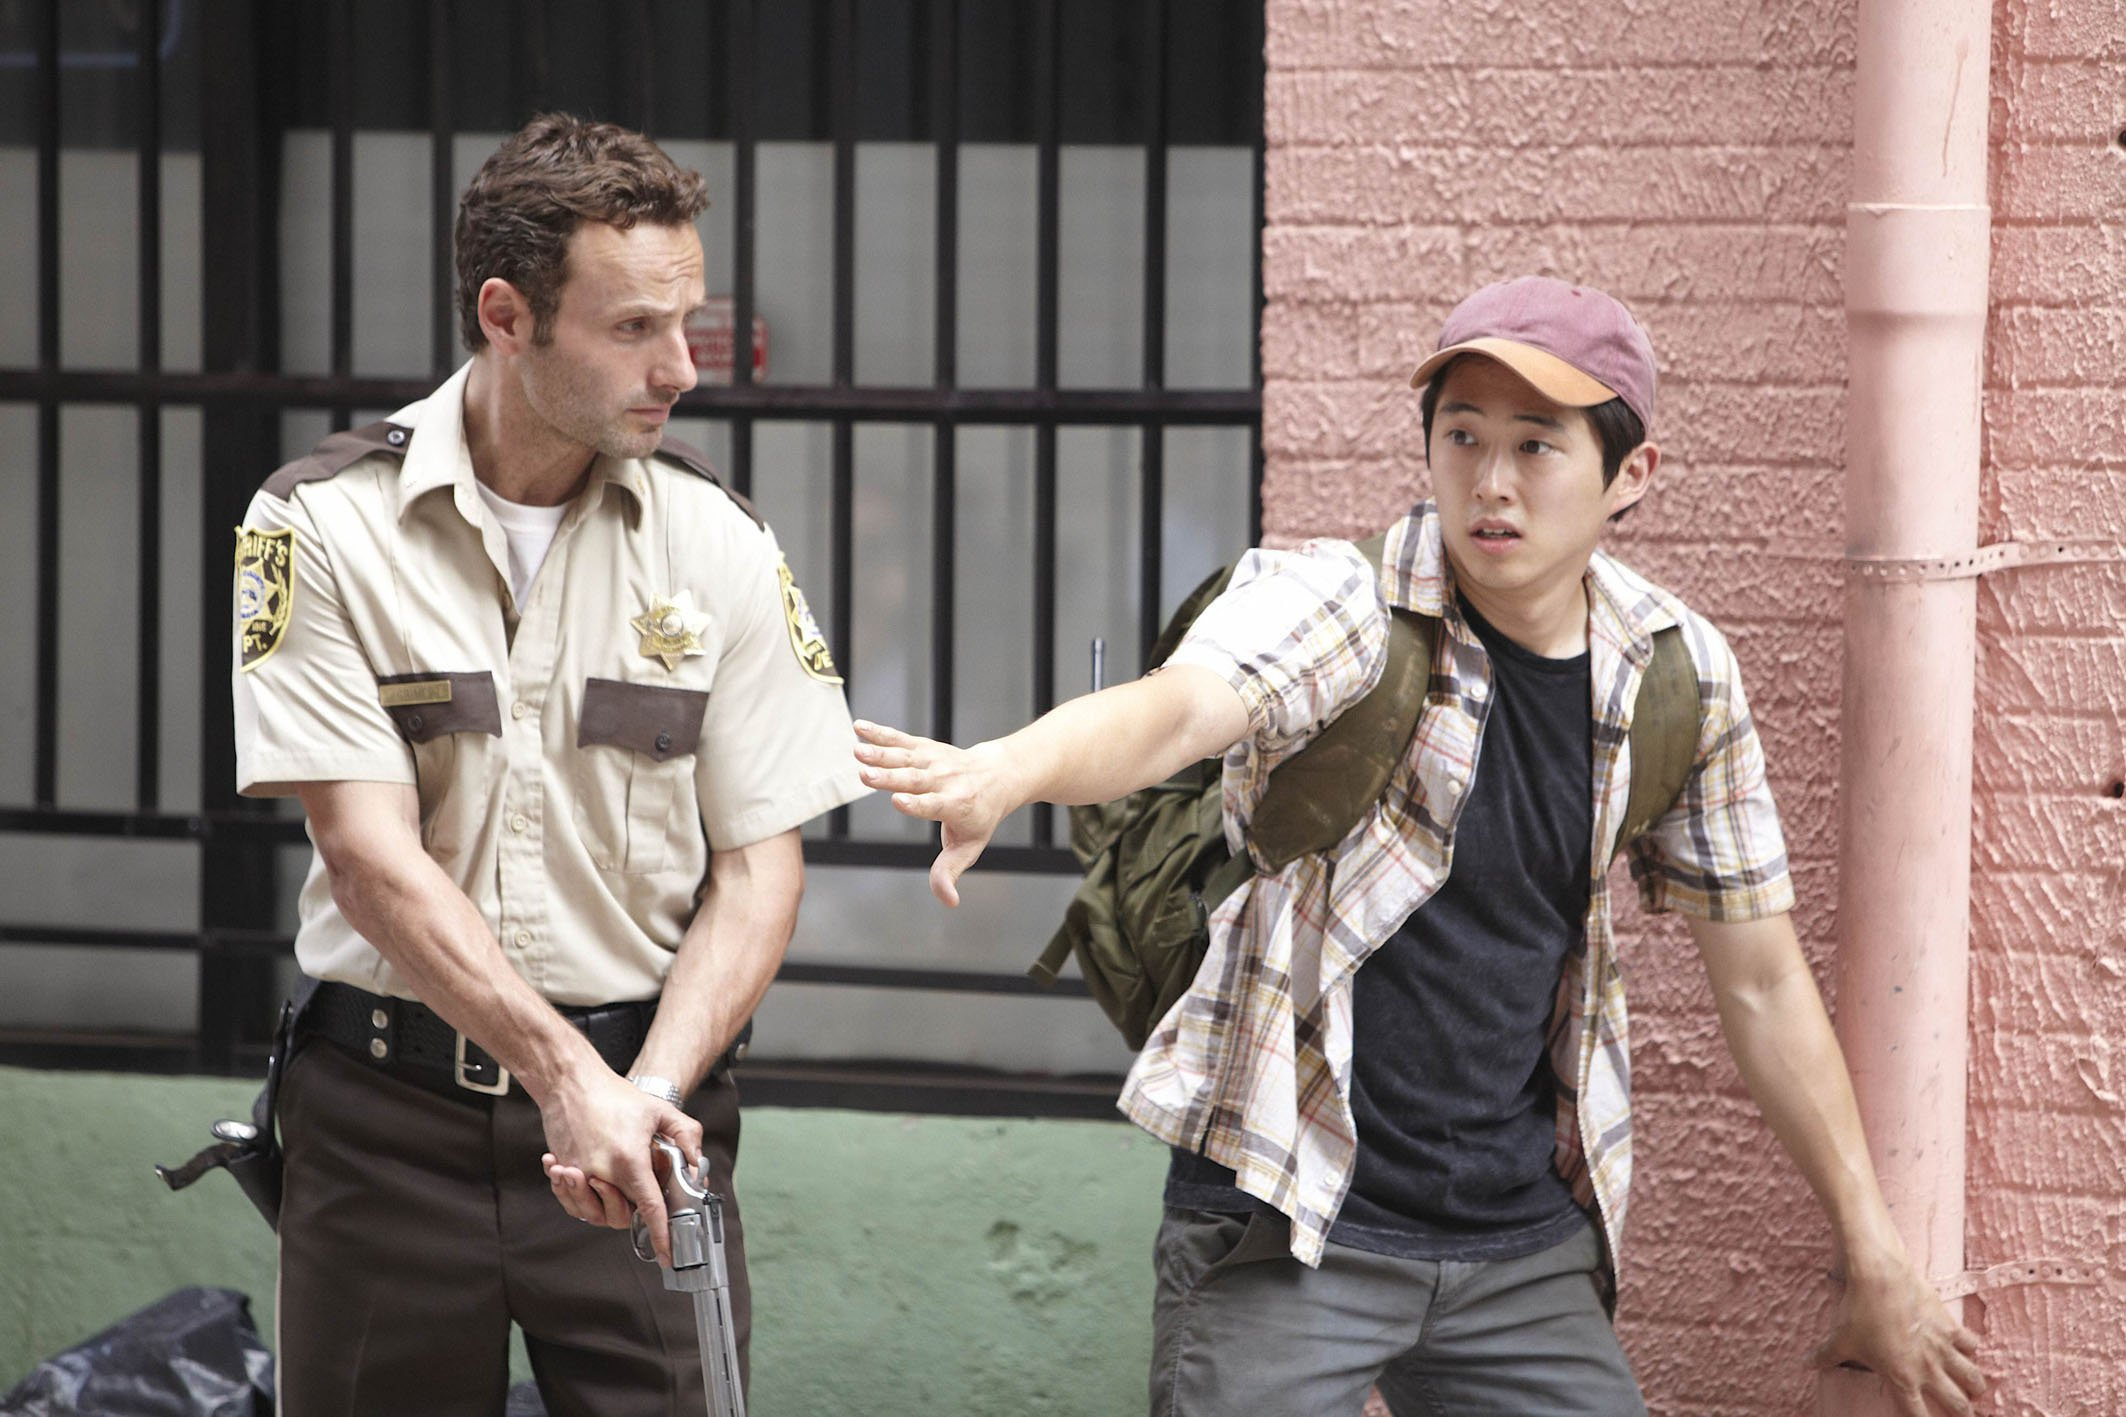 The Walking Dead's Andrew Lincoln wasn't happy with Glenn's brutal exit either: 'I regret the manner in which it happened'